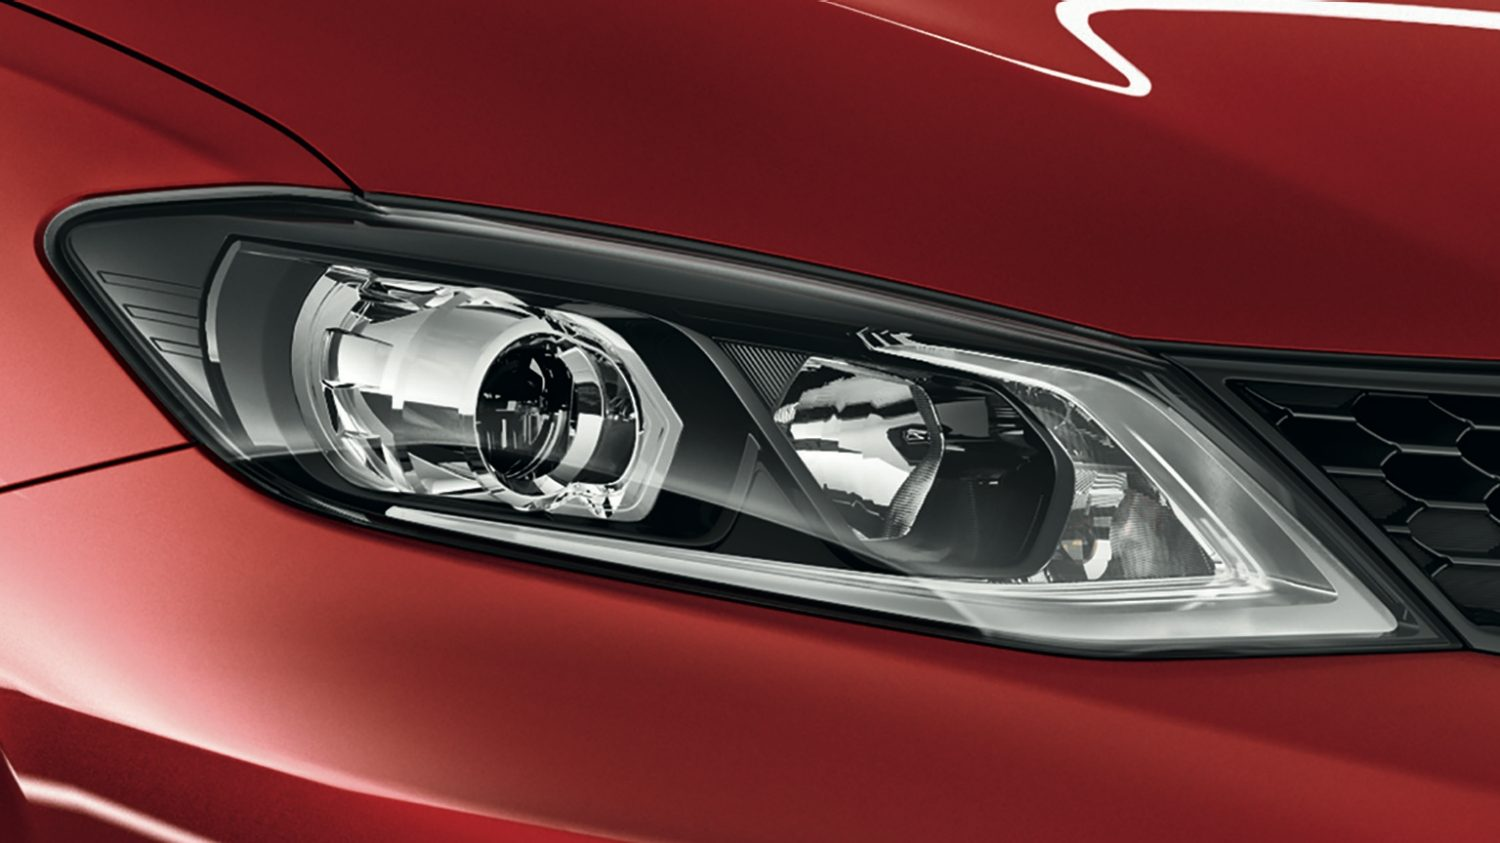 Nissan Pulsar – Hatchback | LED headlights